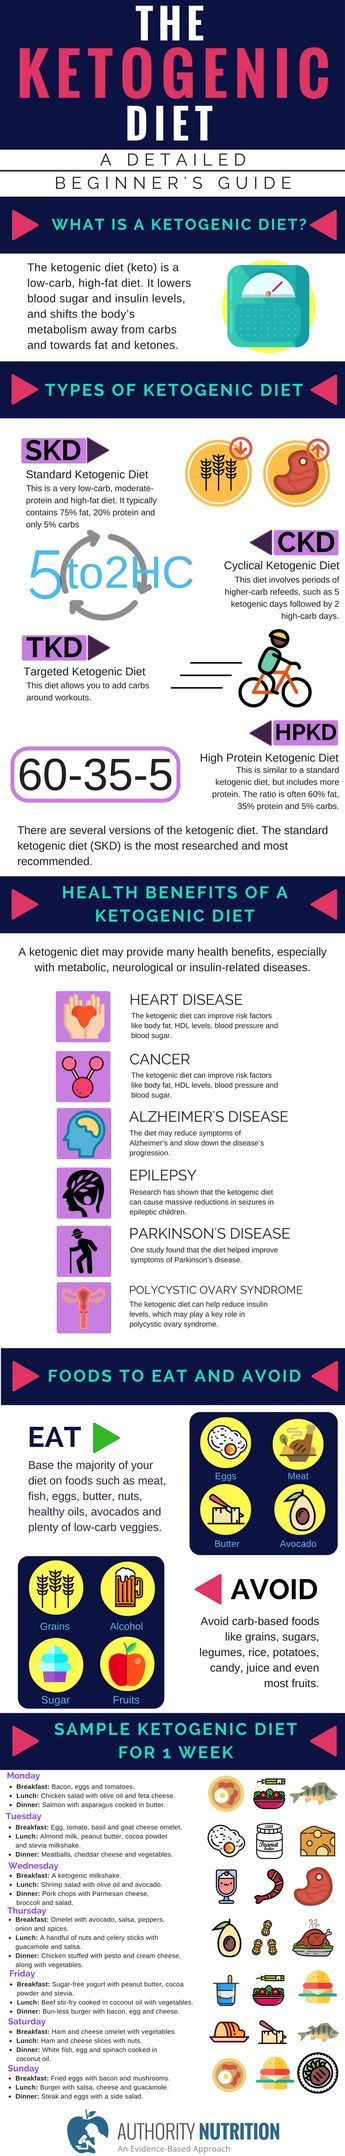 The ketogenic diet is a low-carb, high-fat diet that offers many health benefits. Over 20 ...